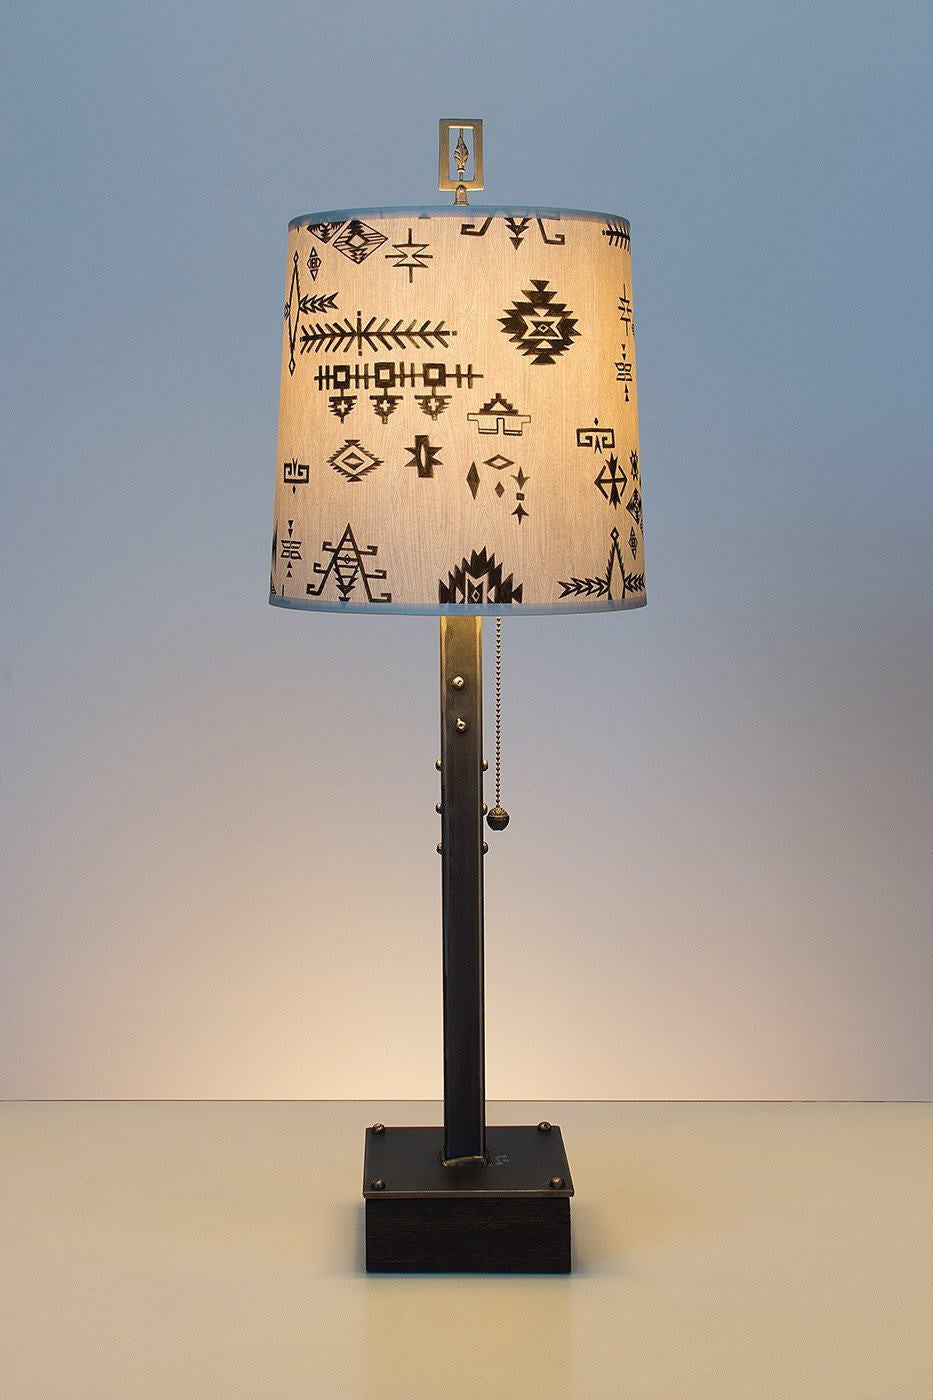 Steel Table Lamp on Wood with Medium Drum Shade in Blanket Sketch